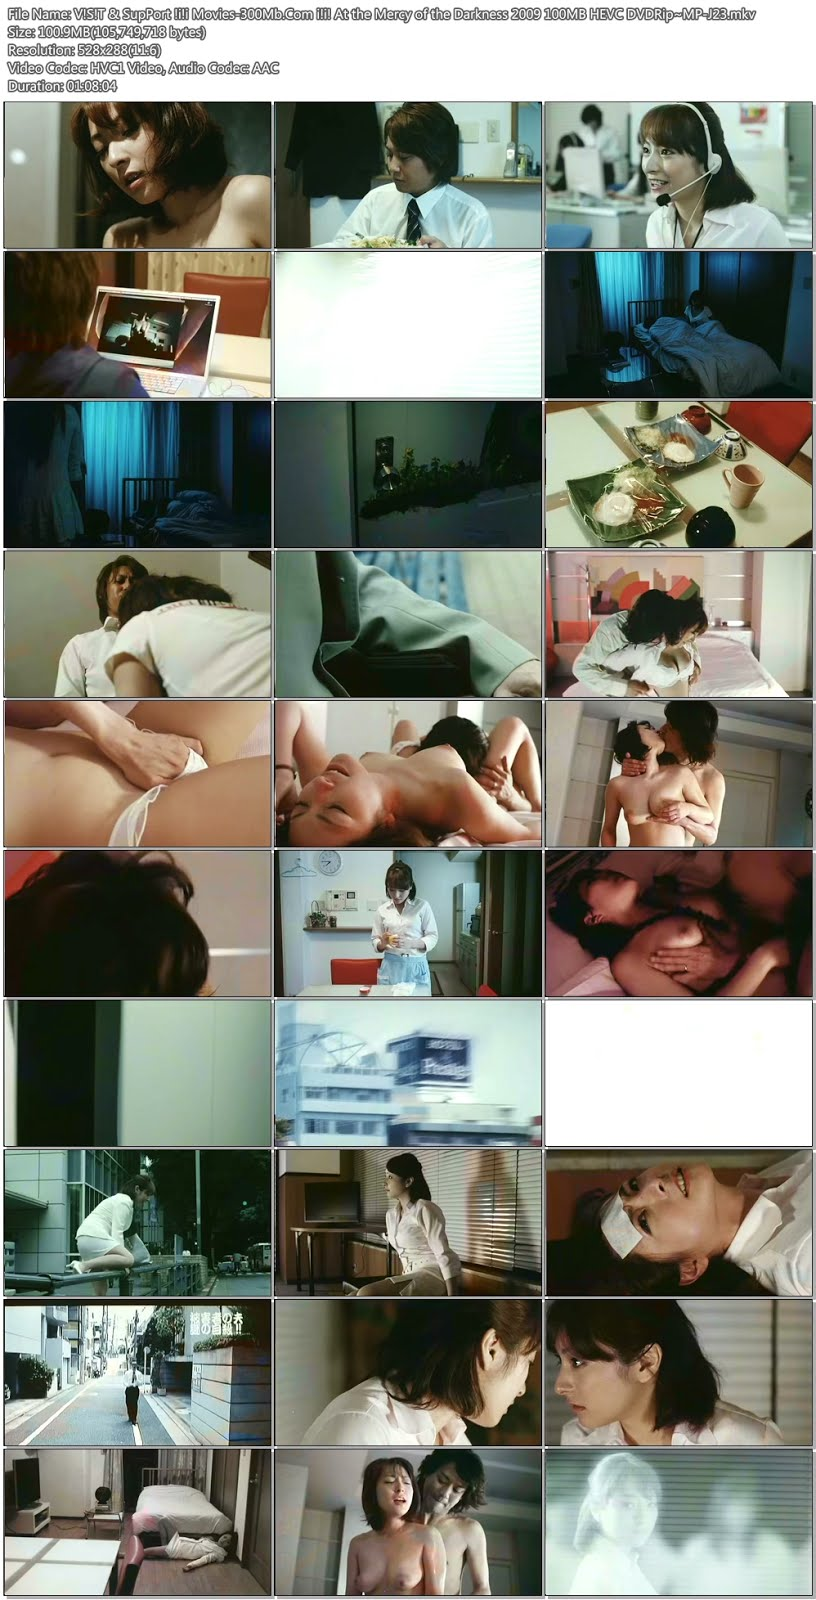 [18+] At the Mercy of the Darkness 2009 100MB HEVC DVDRip Screenshot